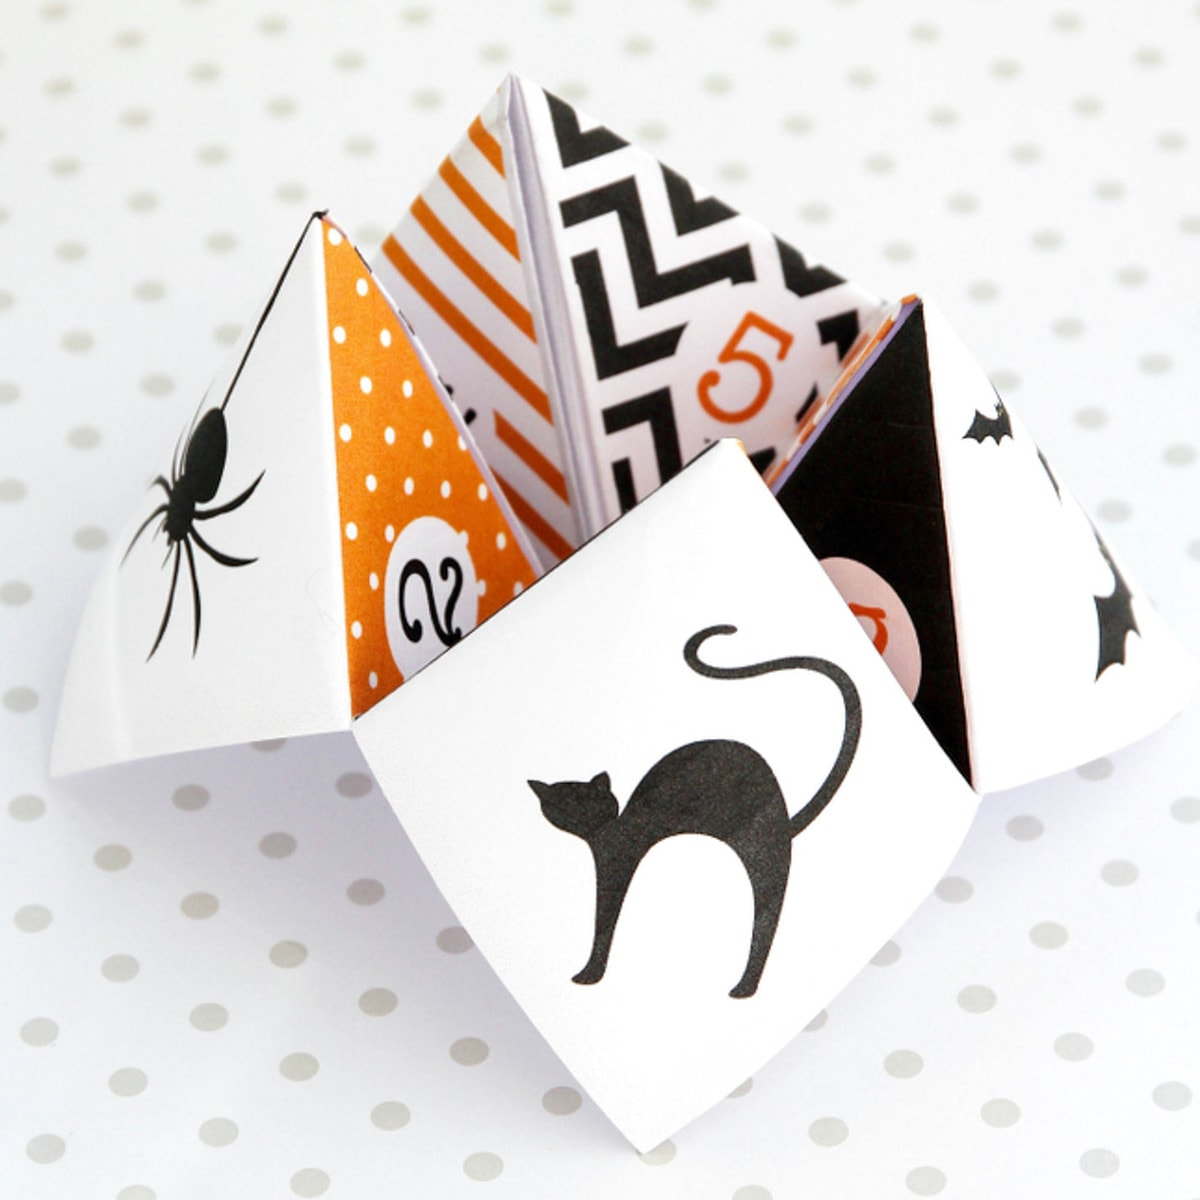 picture regarding Cootie Catcher Printable titled Halloween Cootie Catcher - Absolutely free Printable Obtain Lil Luna